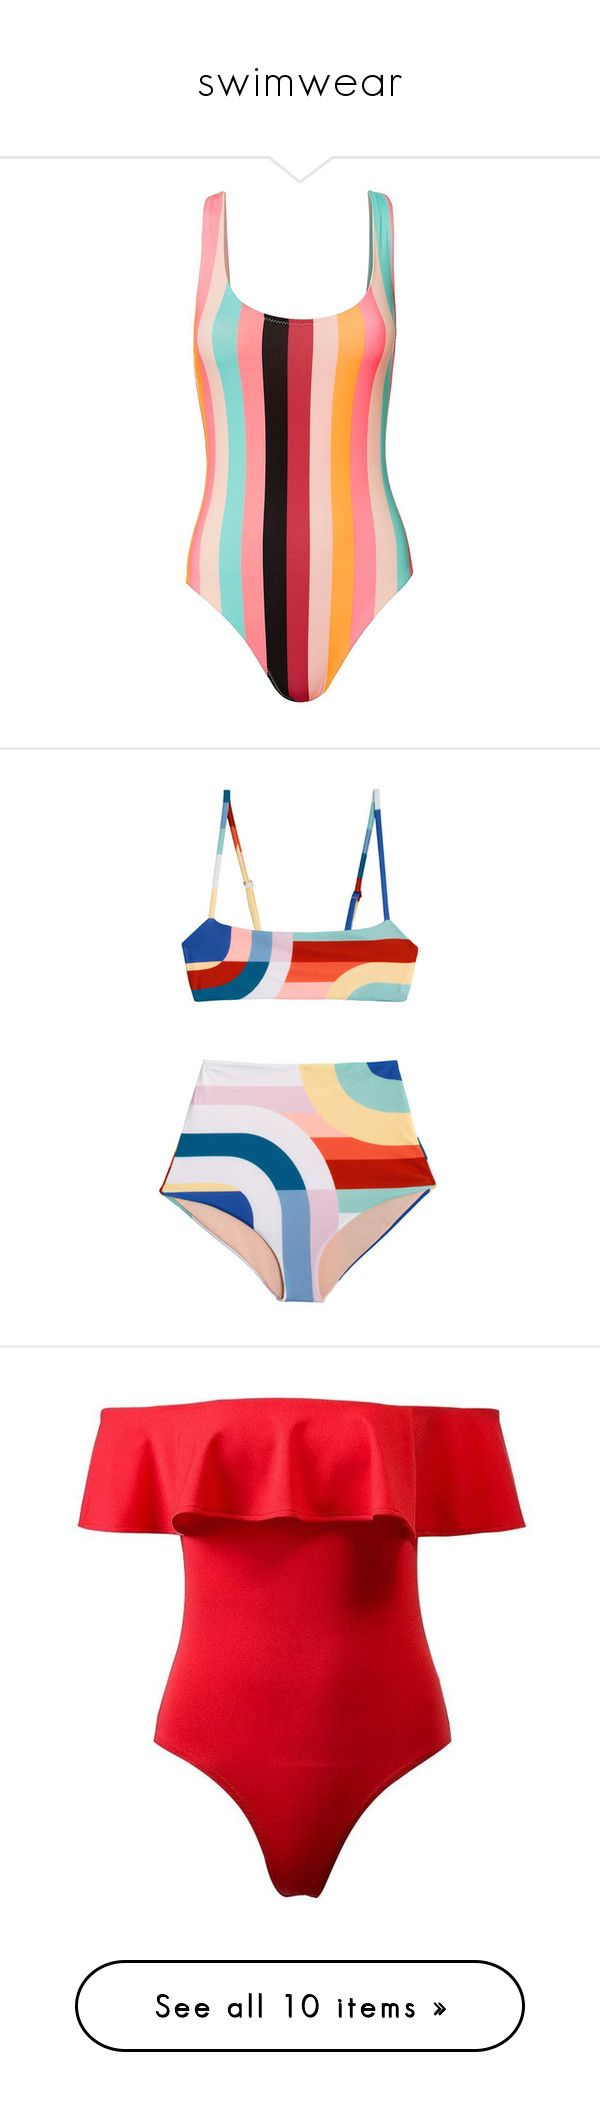 """swimwear"" by ellesay ❤ liked on Polyvore featuring swimwear, one-piece swimsuits, swimsuit, bathing suit, stripe, swim, swim costume, one piece maillot swimsuits, one piece swimsuit and maillot bathing suit"